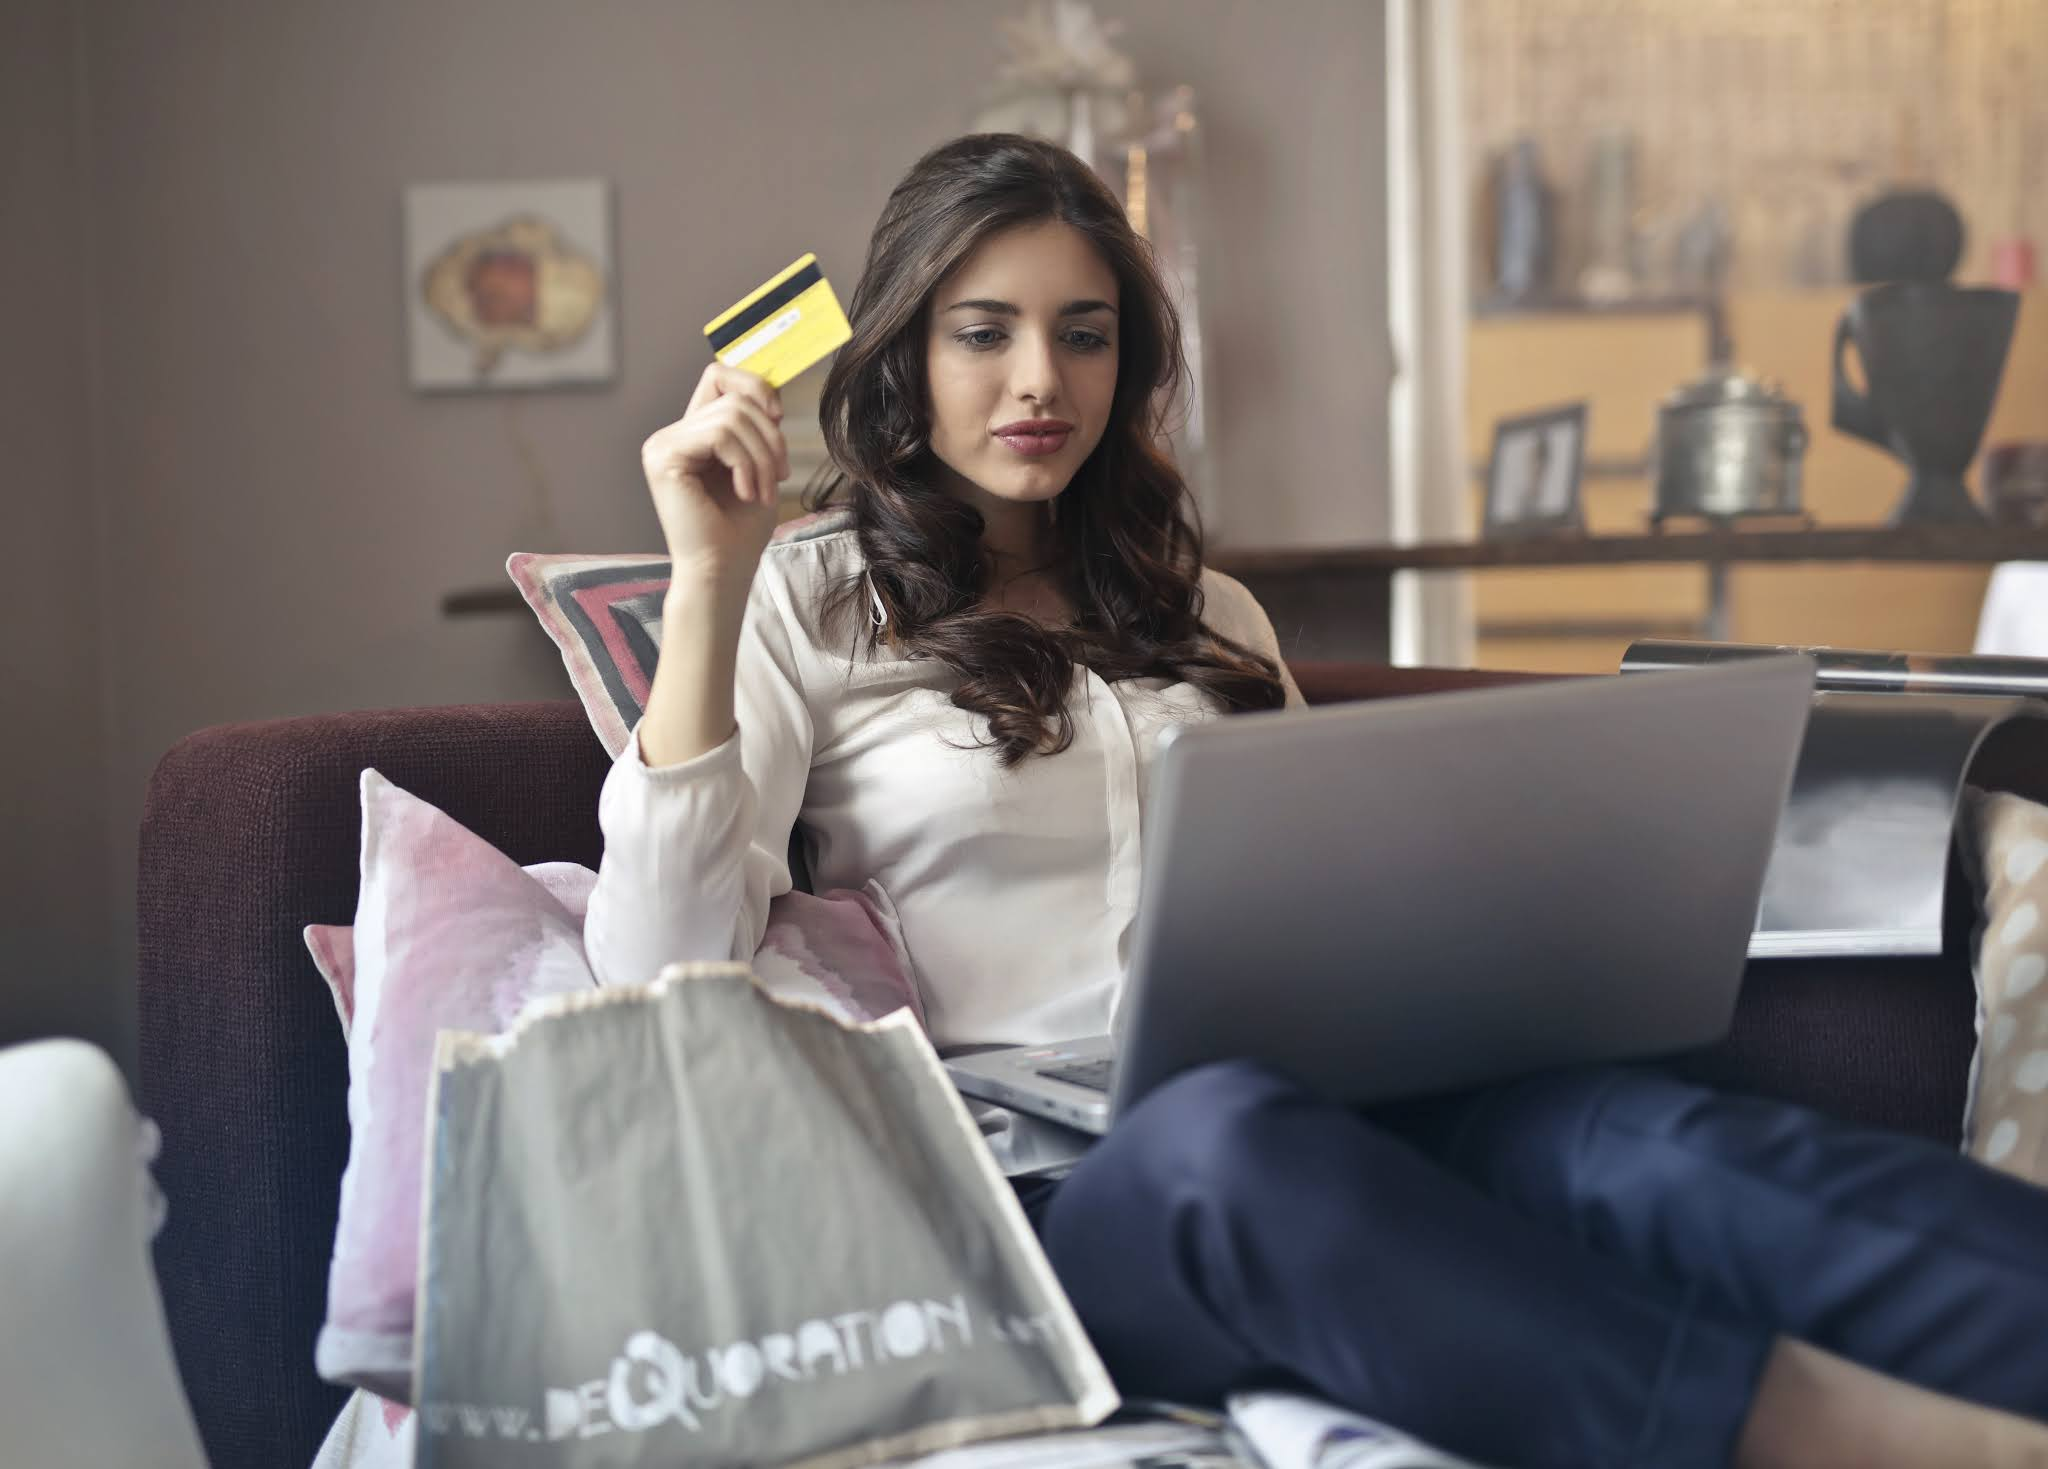 Cybersecurity and Credit Cards: 3 Ways to Protect Yourself From Fraud